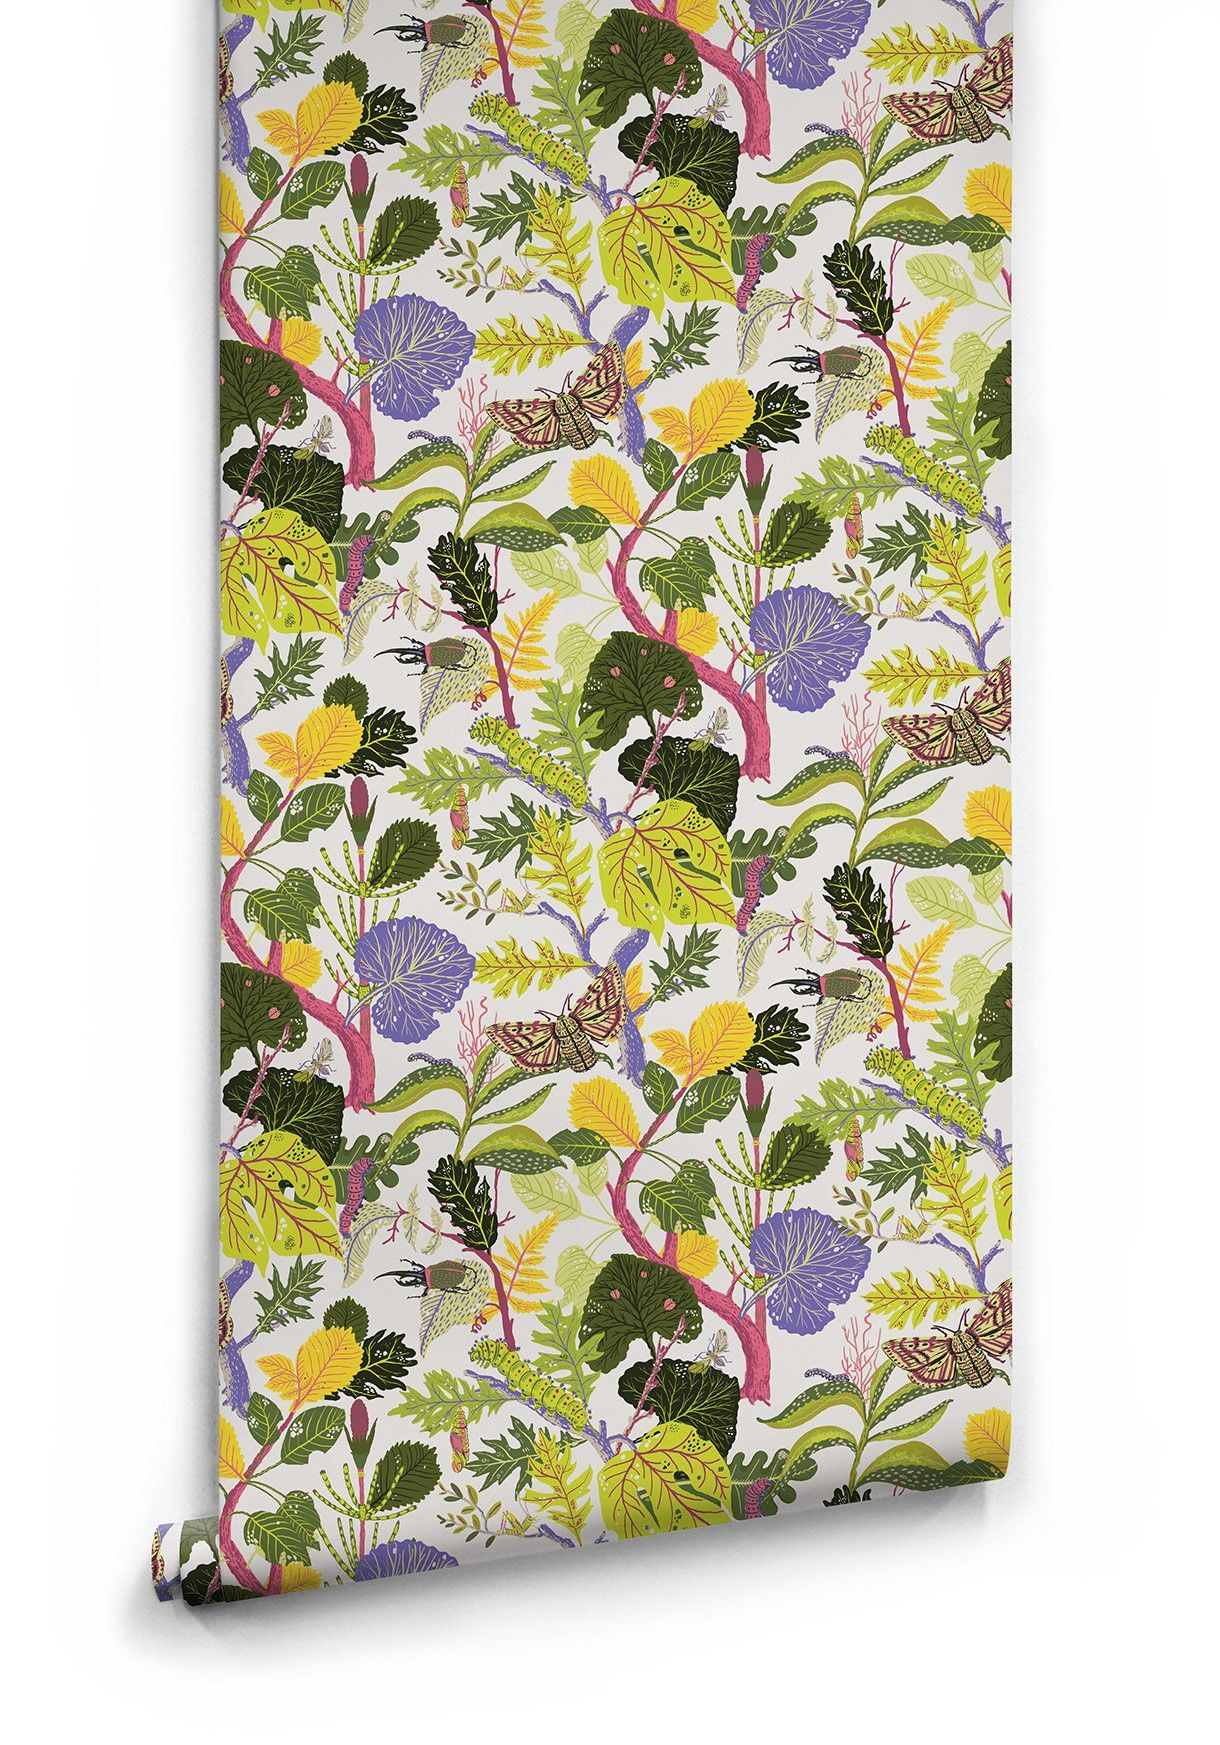 Caterpillar, Lively Botanical Wallpaper • Bold & Fun